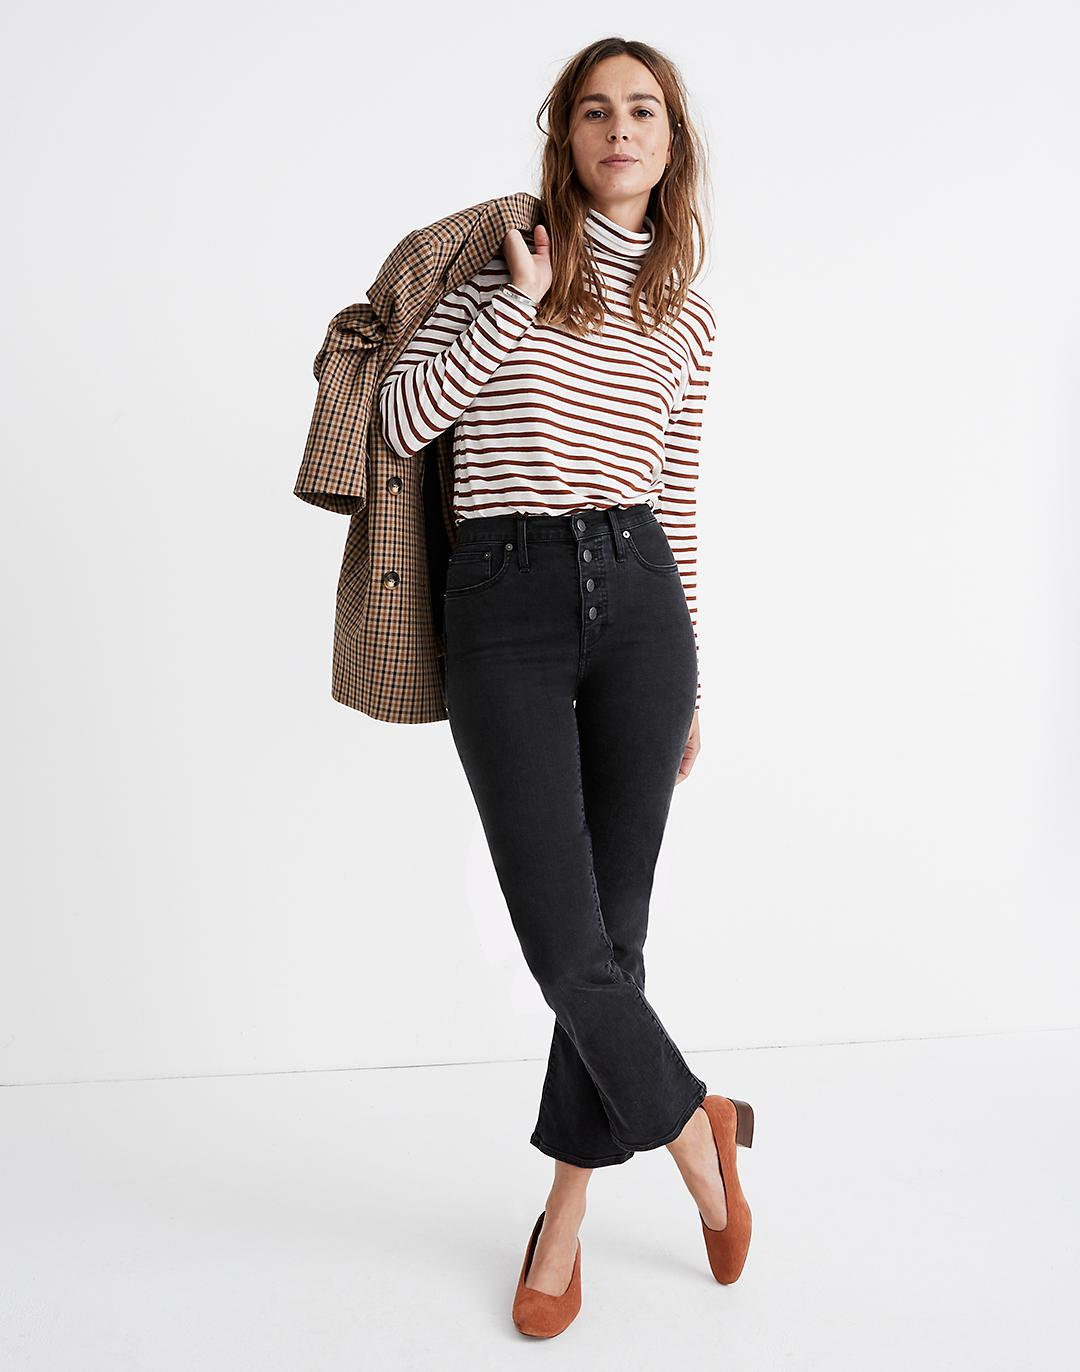 Petite Cali Demi-Boot Jeans in Bellspring Wash: Button-Front Edition